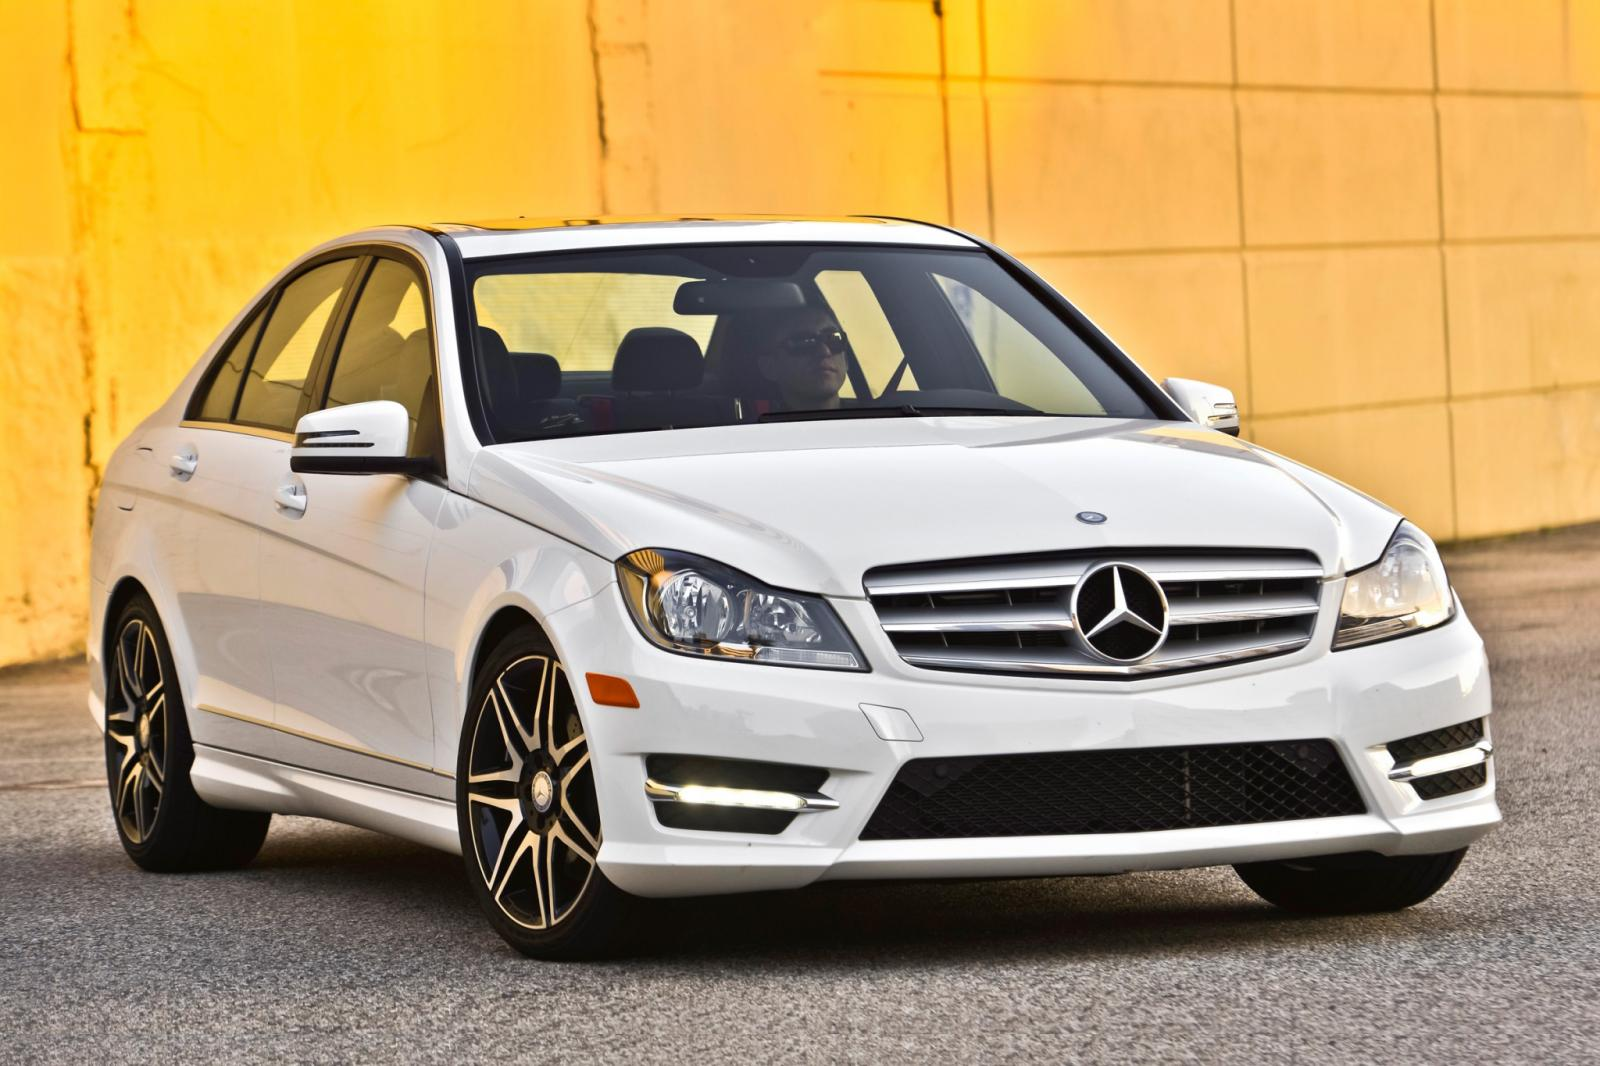 2014 mercedes benz c class information and photos zombiedrive. Black Bedroom Furniture Sets. Home Design Ideas